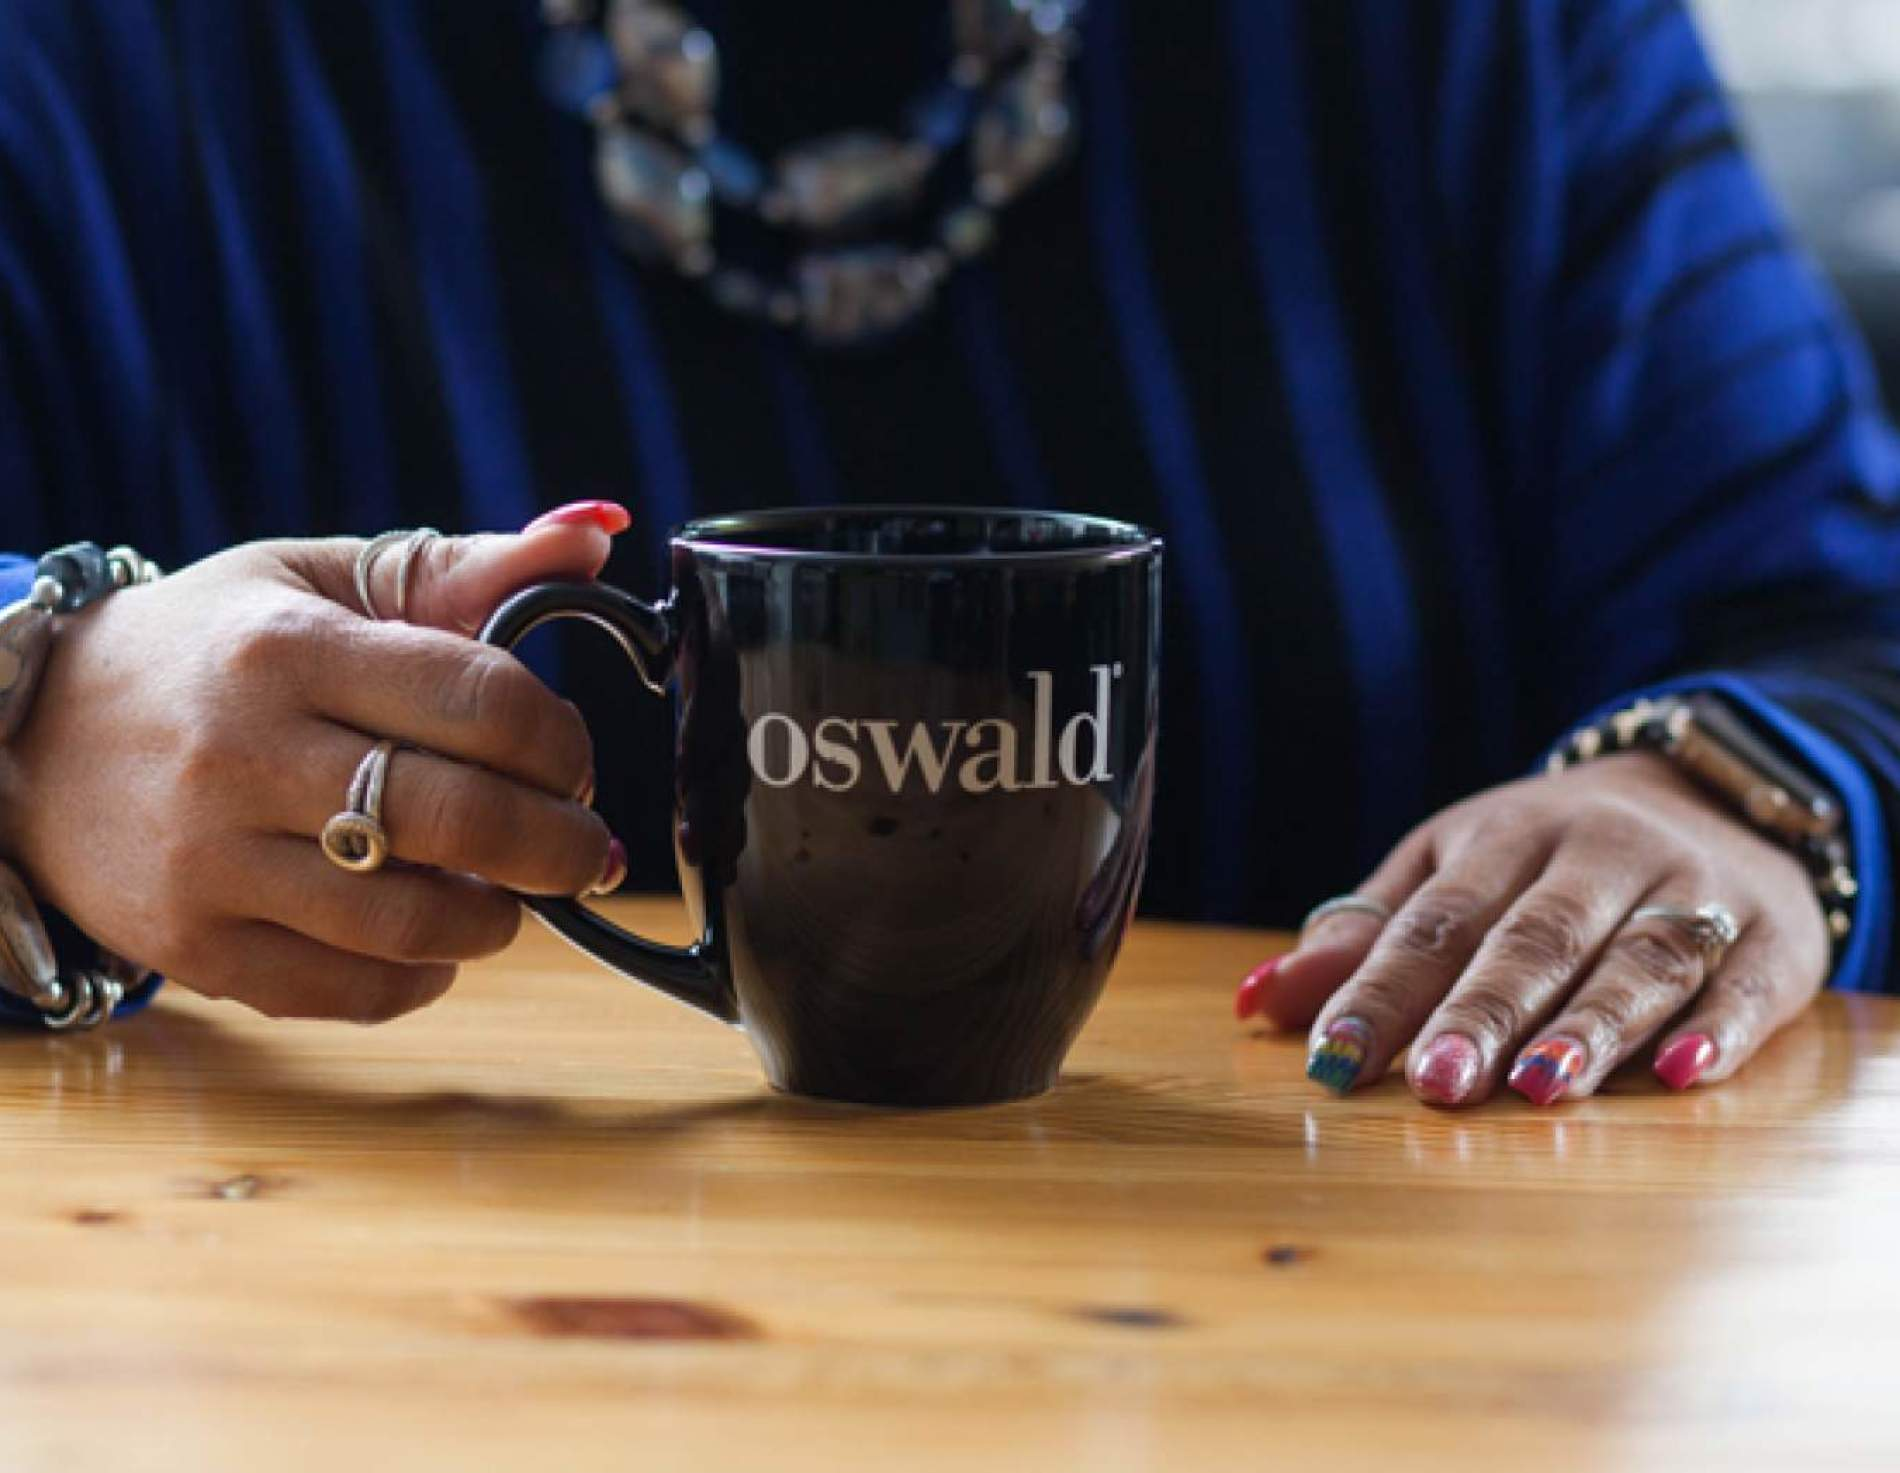 Woman holding a Oswald coffee mug